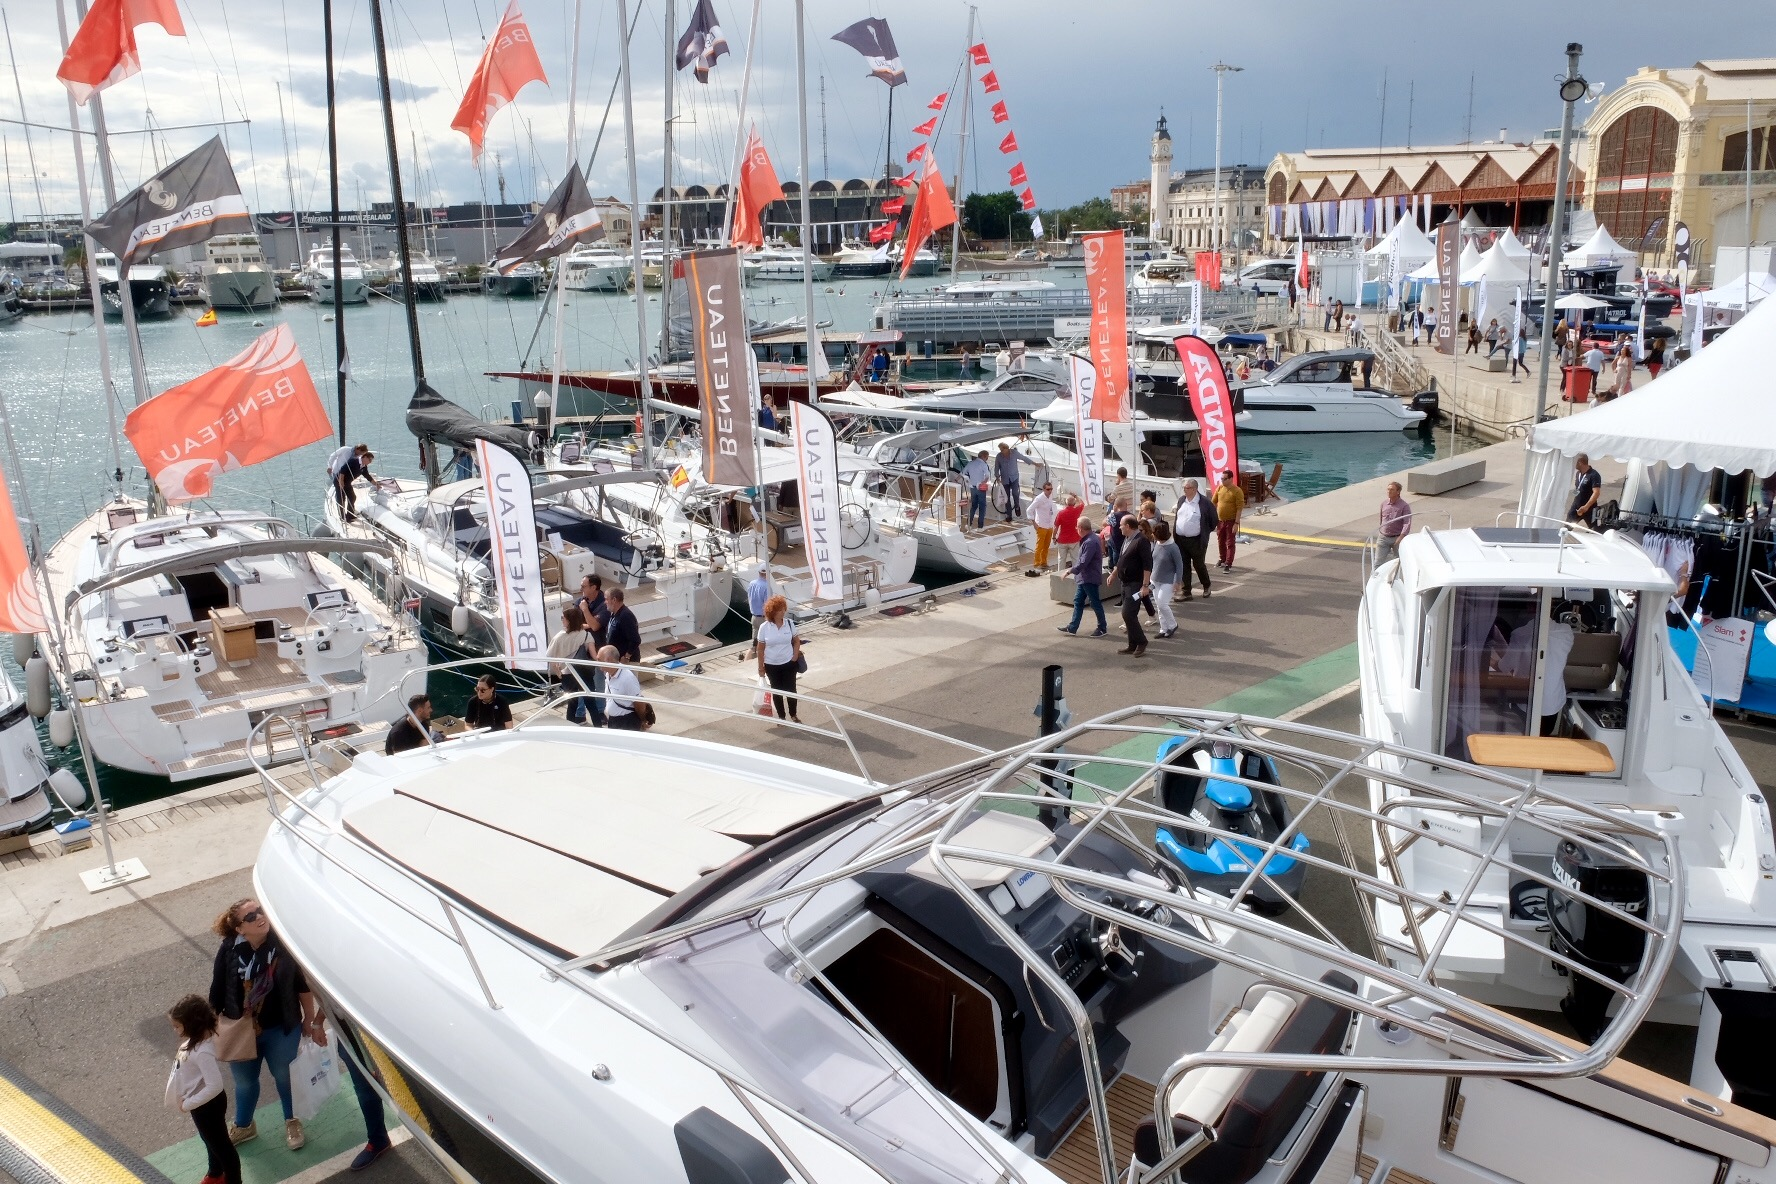 Valencia Boat Show: unprecedented growth